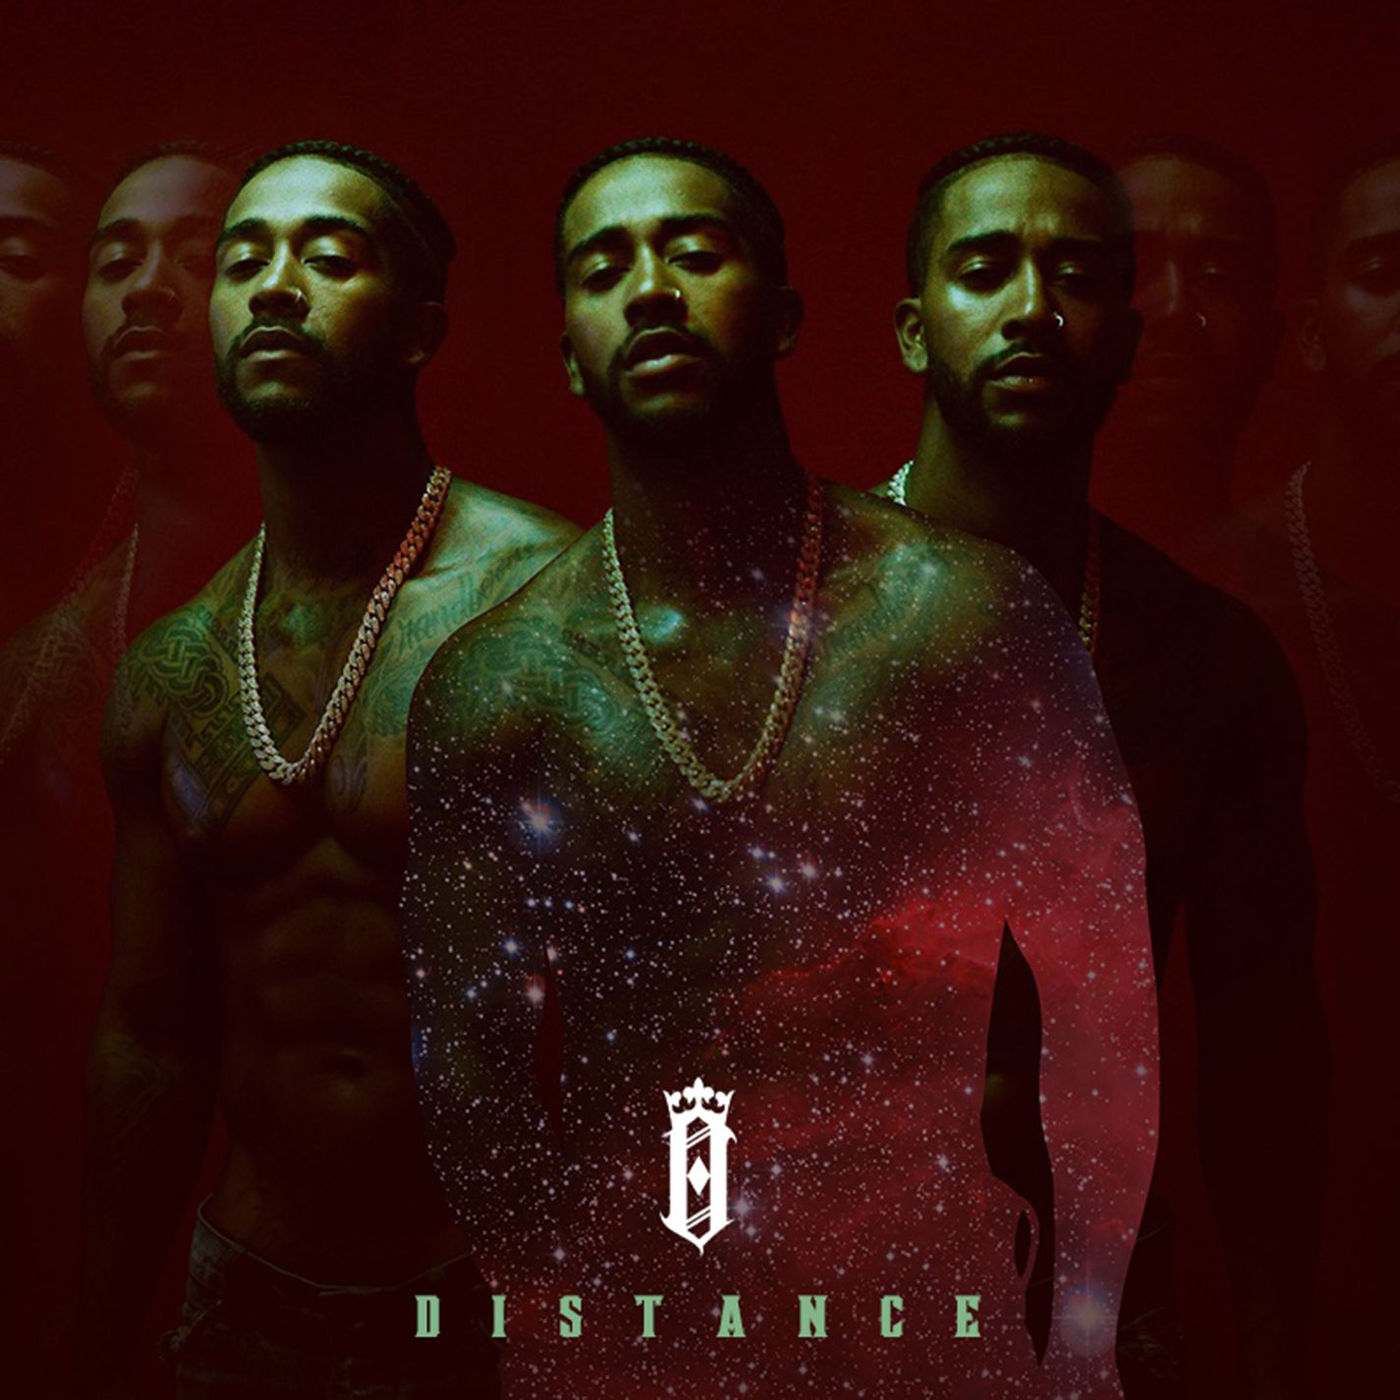 Omarion - Distance - Single Cover